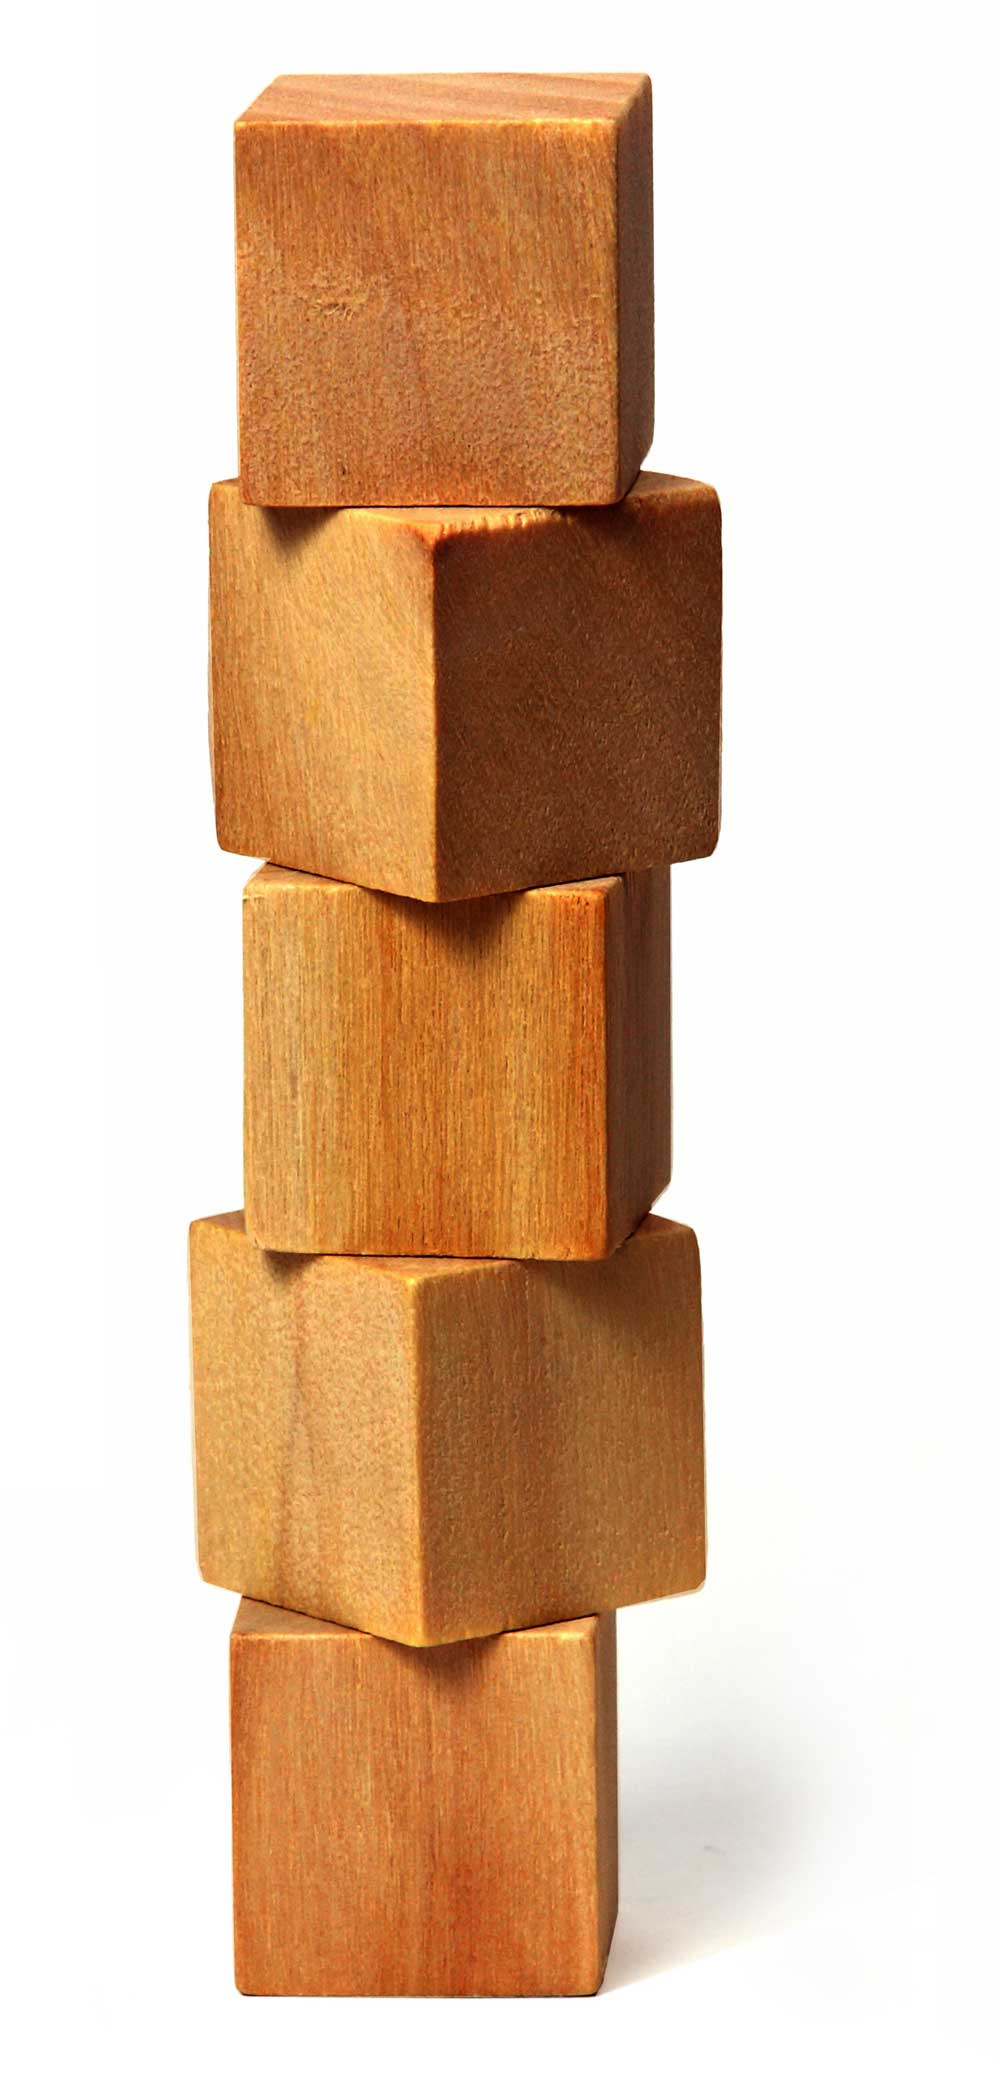 A stack of wooden blocks piled up high against a white background